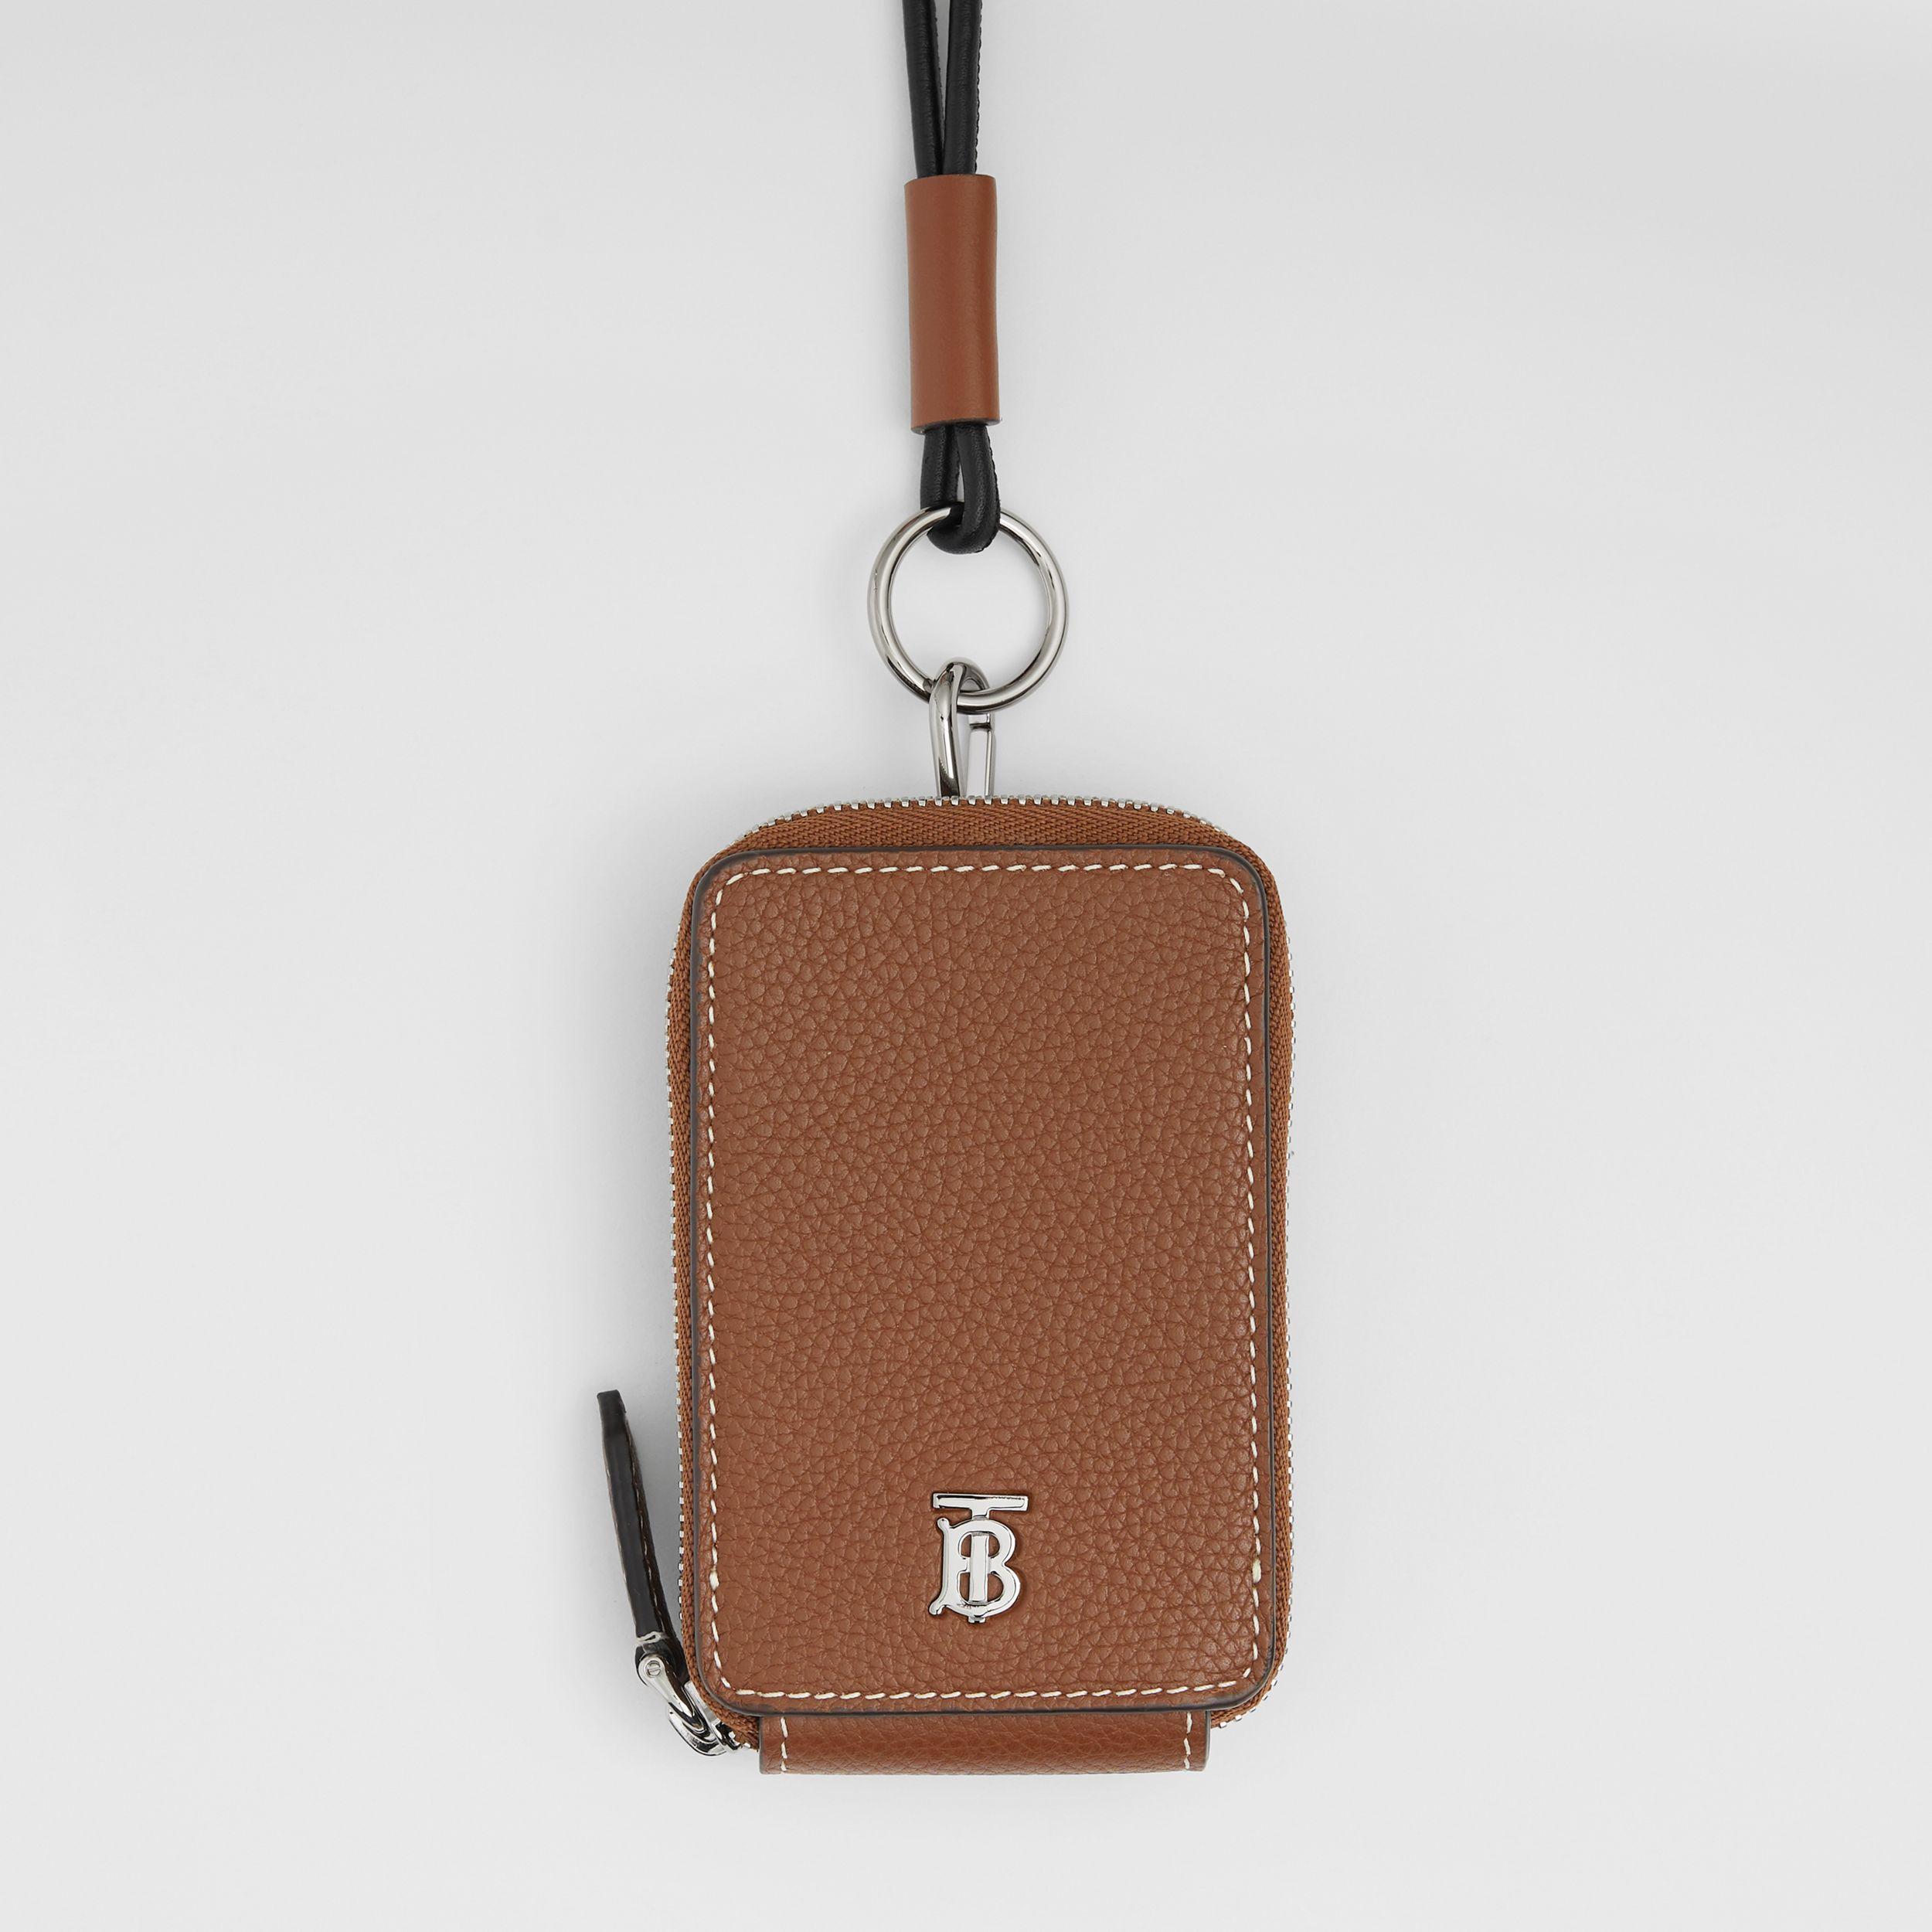 Grainy Leather Card Case Lanyard in Tan - Men | Burberry - 2